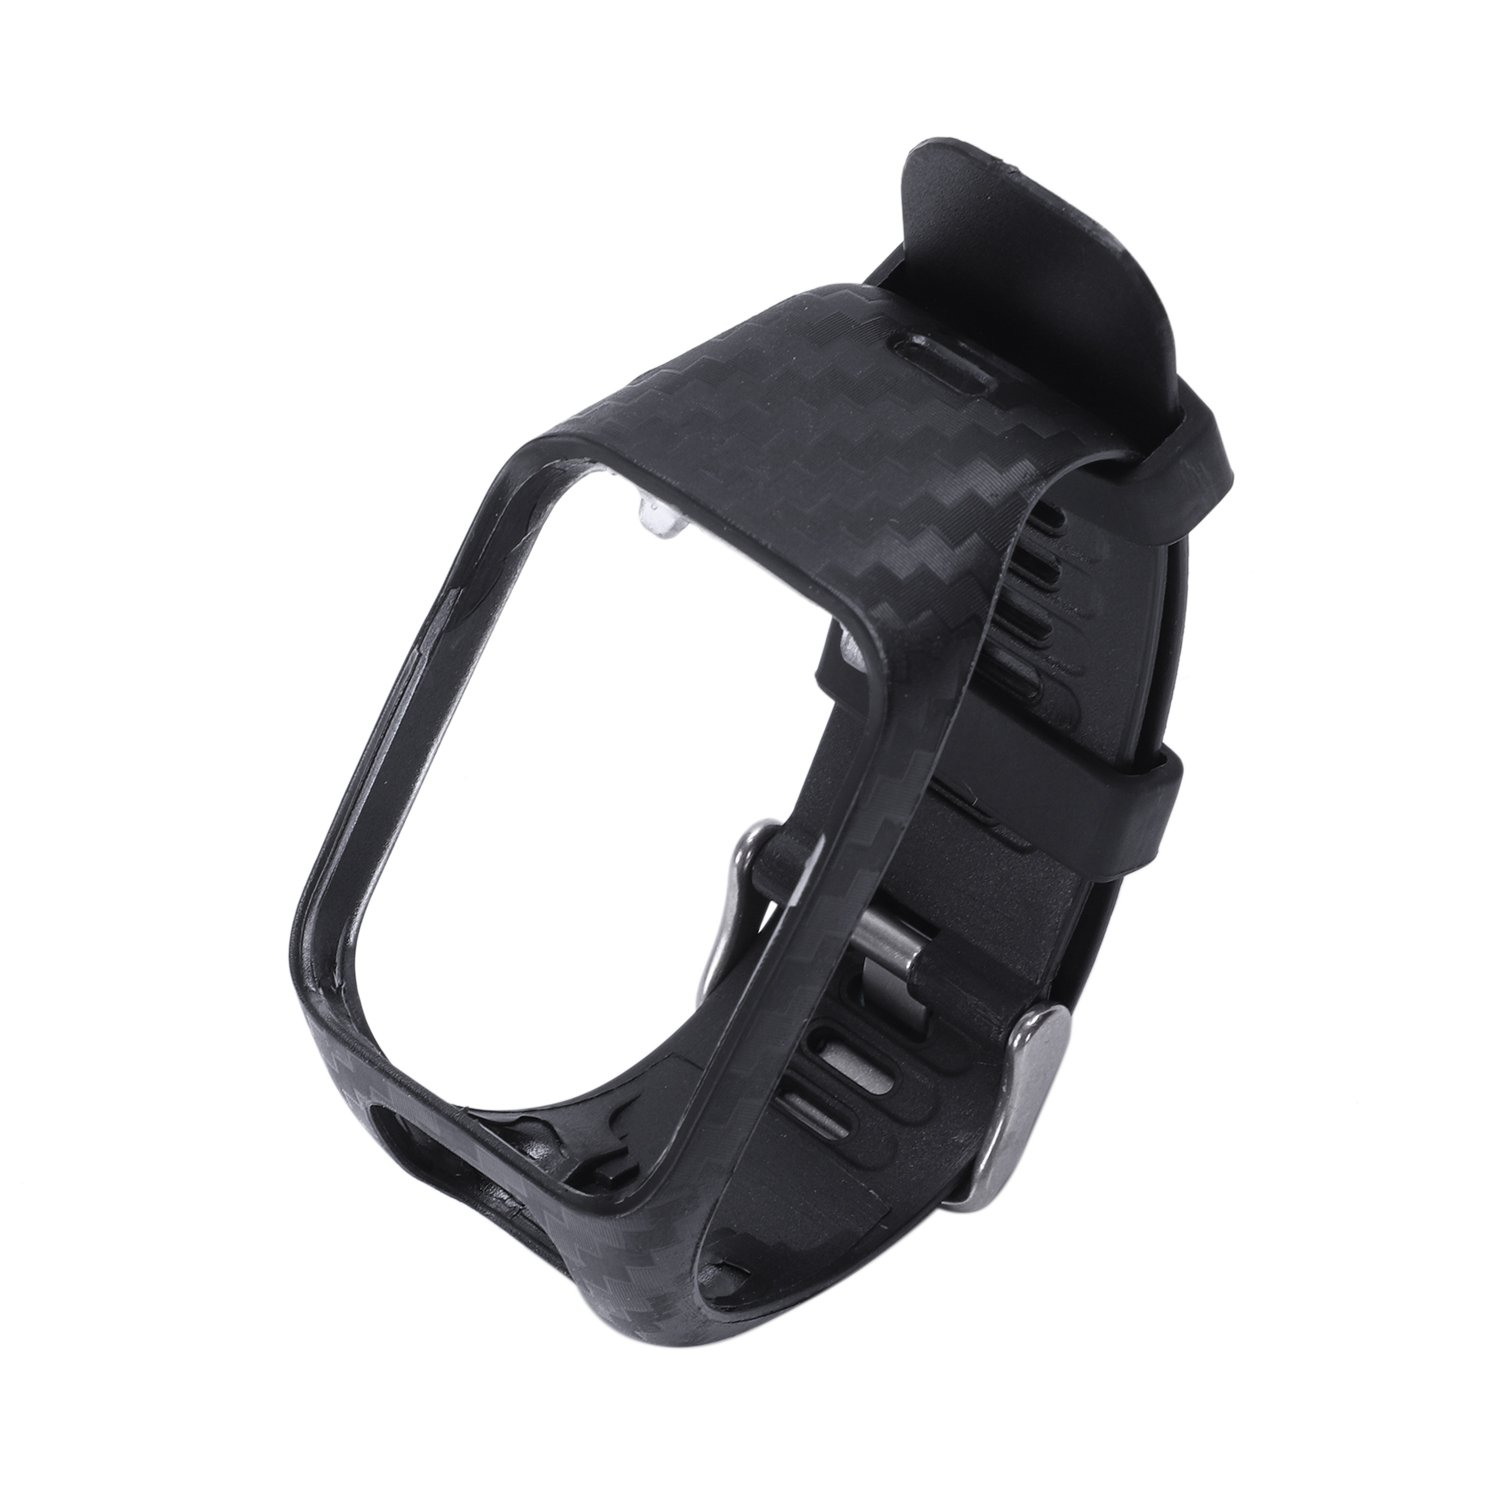 Watchband For Tomtom 2 3 Series Watch Strap Silicone Replacement Wrist Band Strap For Tomtom Runner 2 3 Gps Watch(Black)